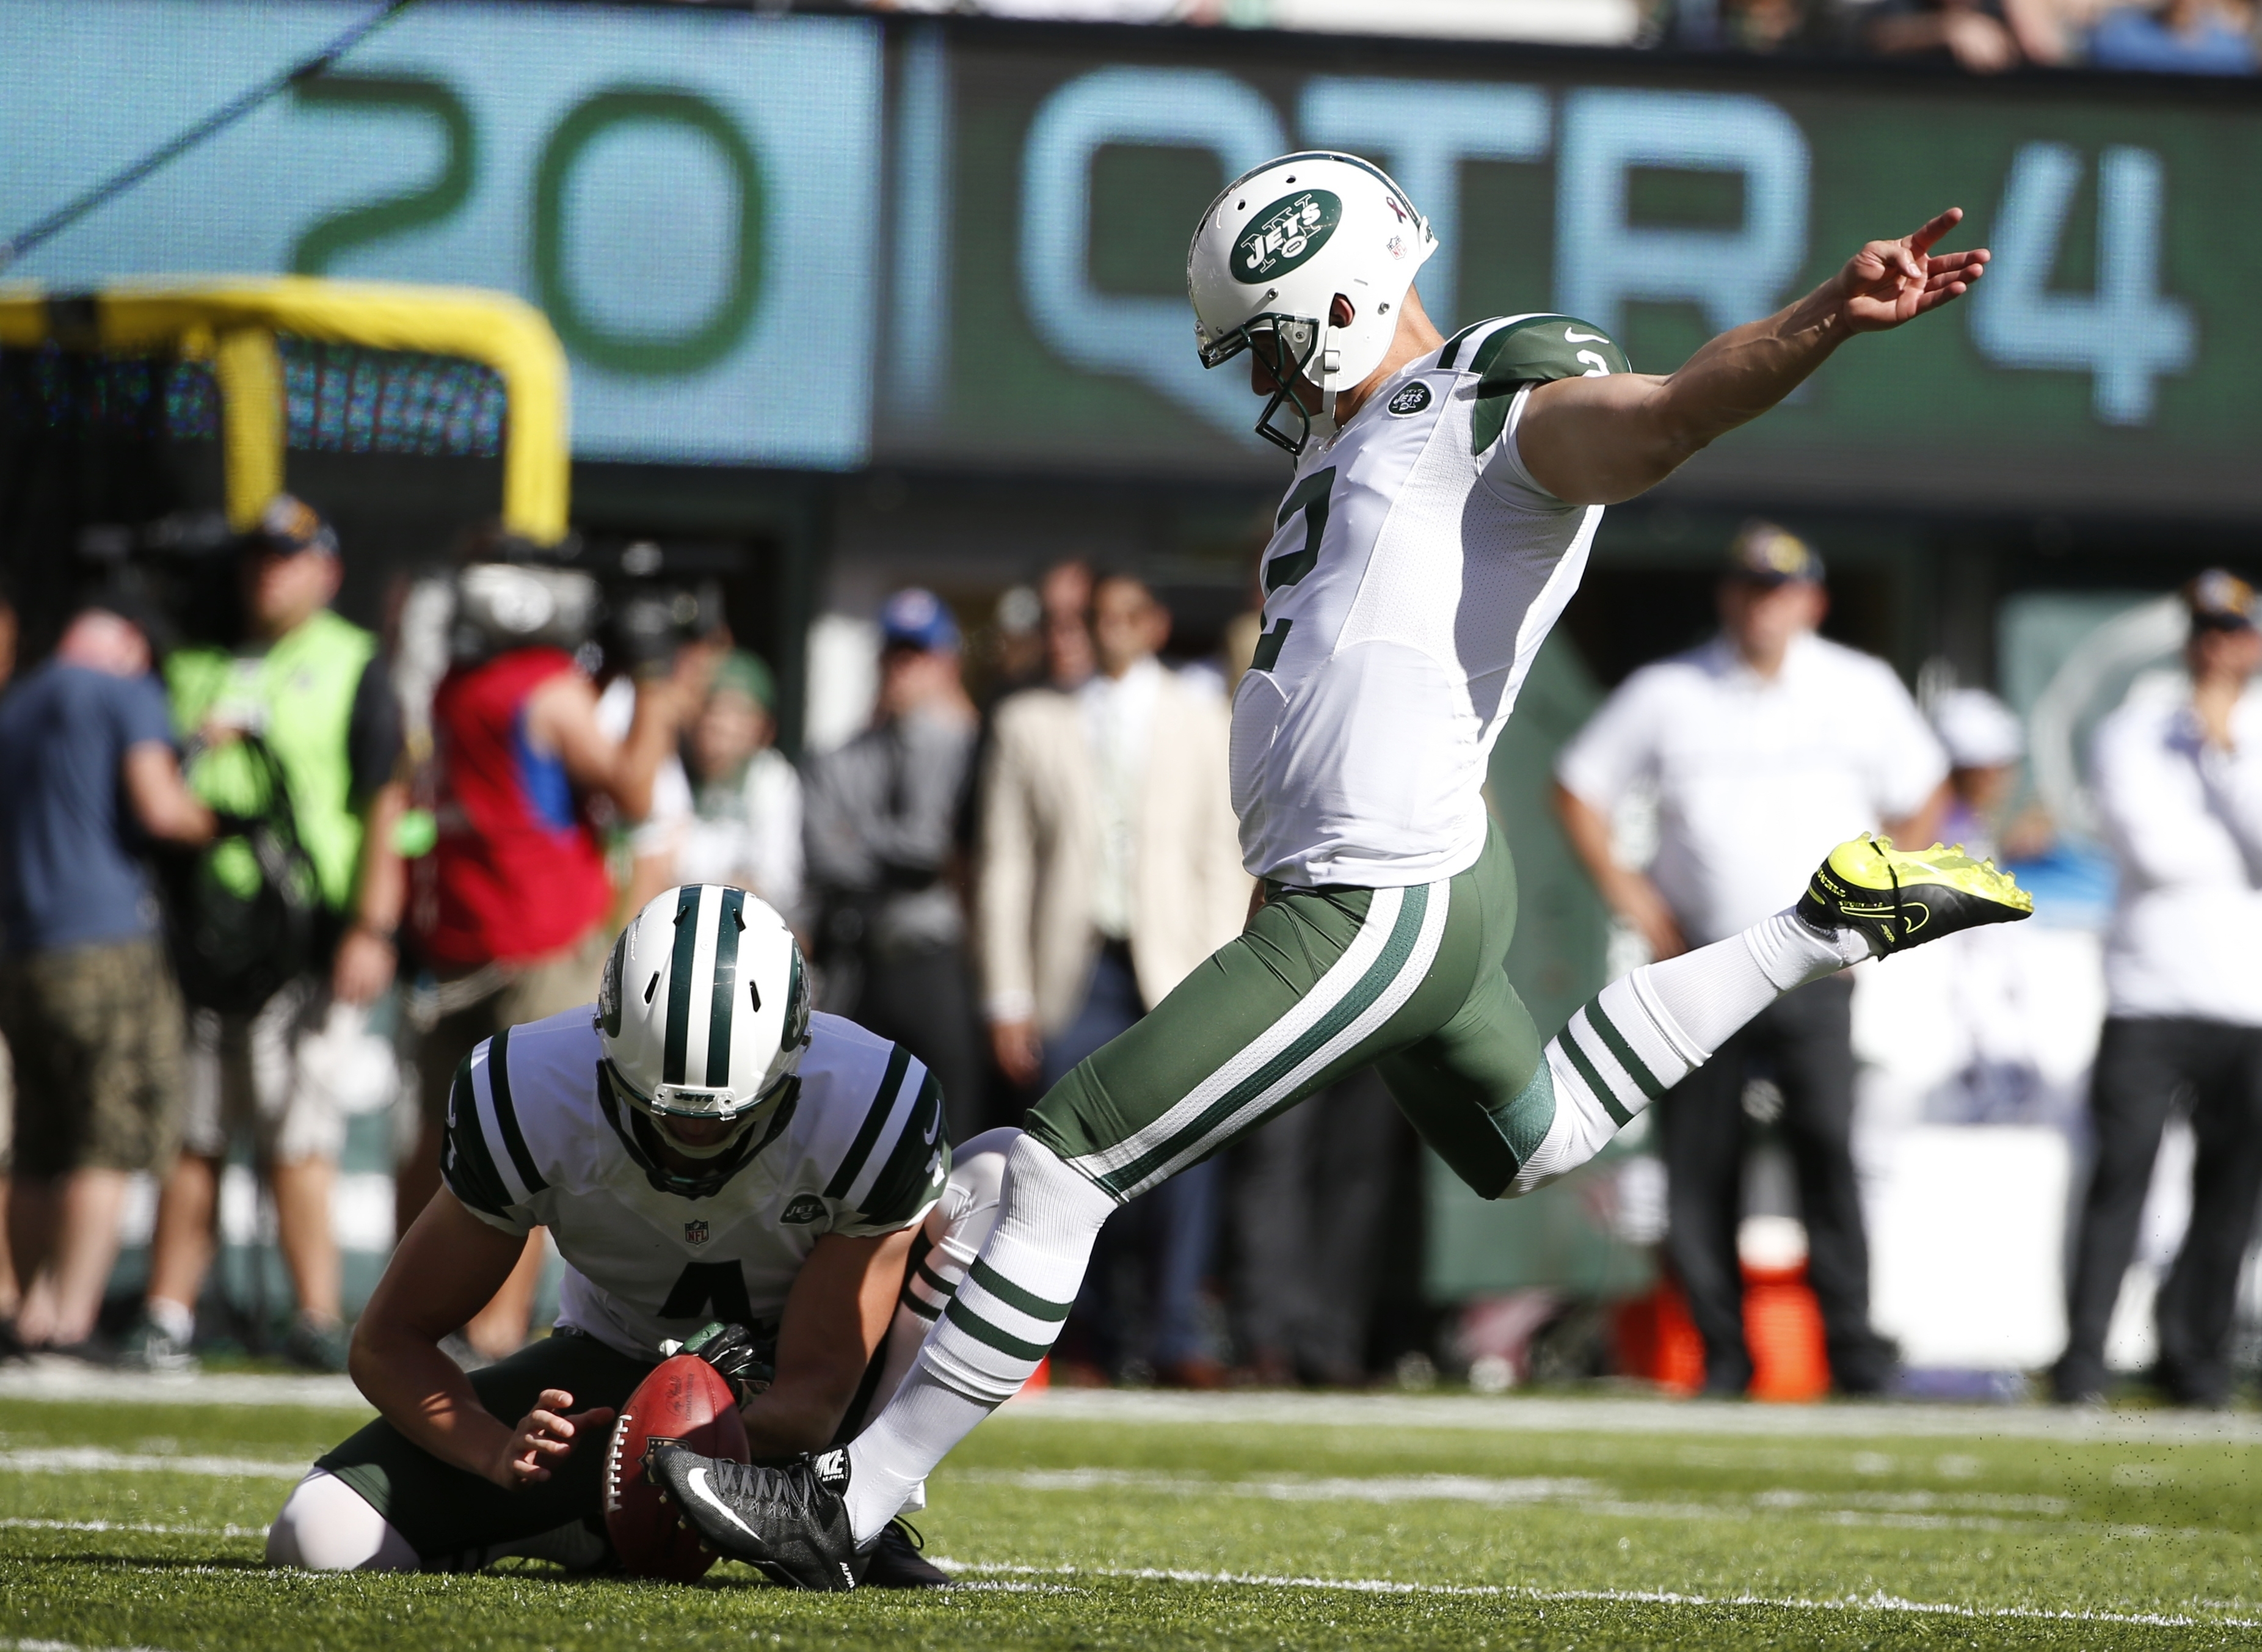 New York Jets kicker Nick Folk (2) kicks a field goal during the second half of an NFL football game against the Cincinnati Bengals Sunday, Sept. 11, 2016 in East Rutherford, N.J. (AP Photo/Kathy Willens)